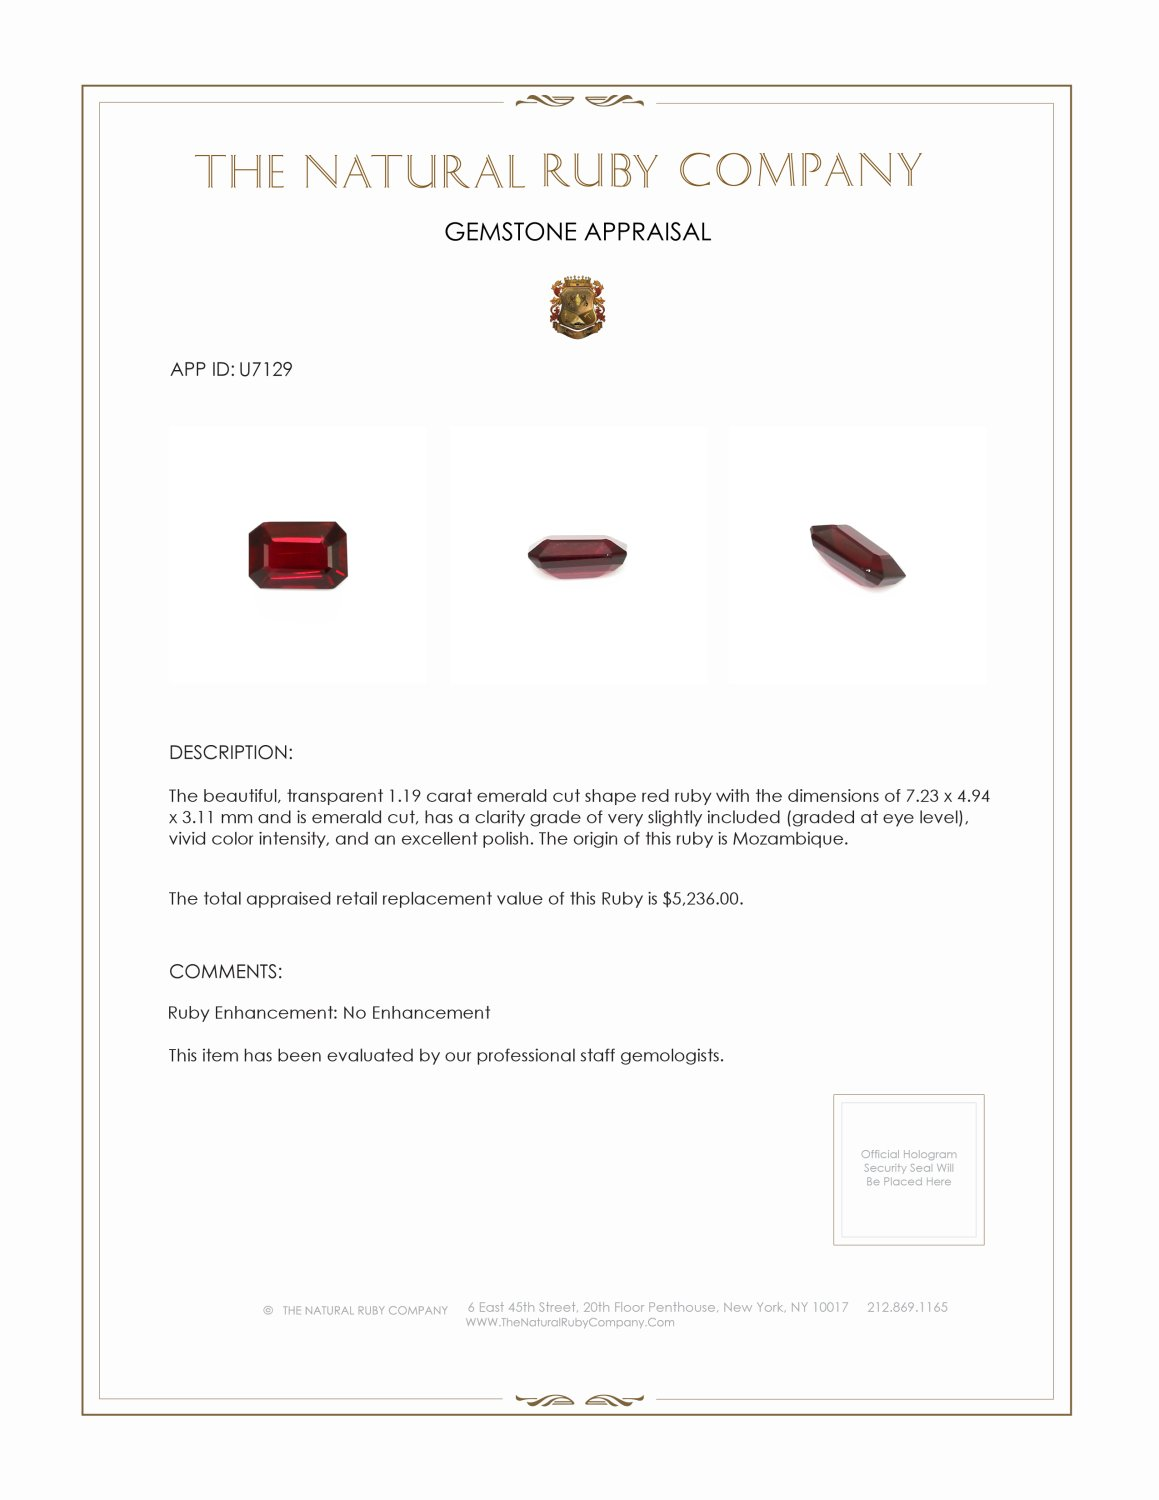 Natural Untreated Ruby U7129 Certification 3